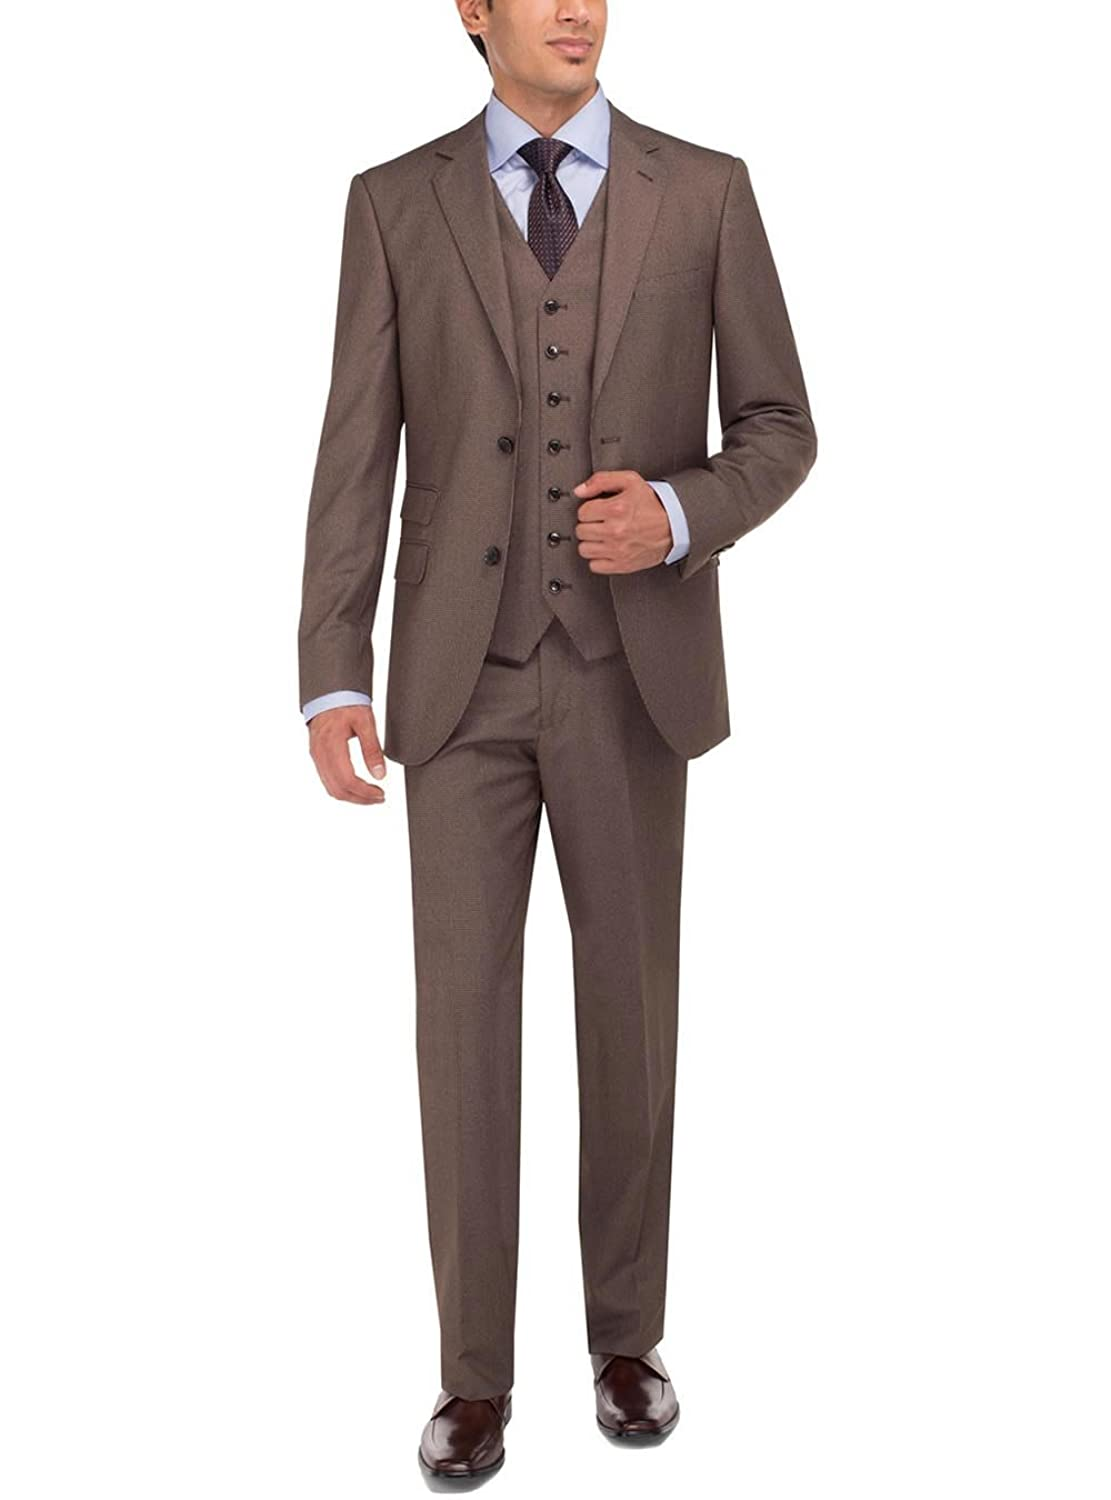 Tweed Ride Clothing, Fashion, Outfits Luciano Natazzi Mens Two Button Tweed 3 Piece Modern Fit Vested Suit $219.95 AT vintagedancer.com